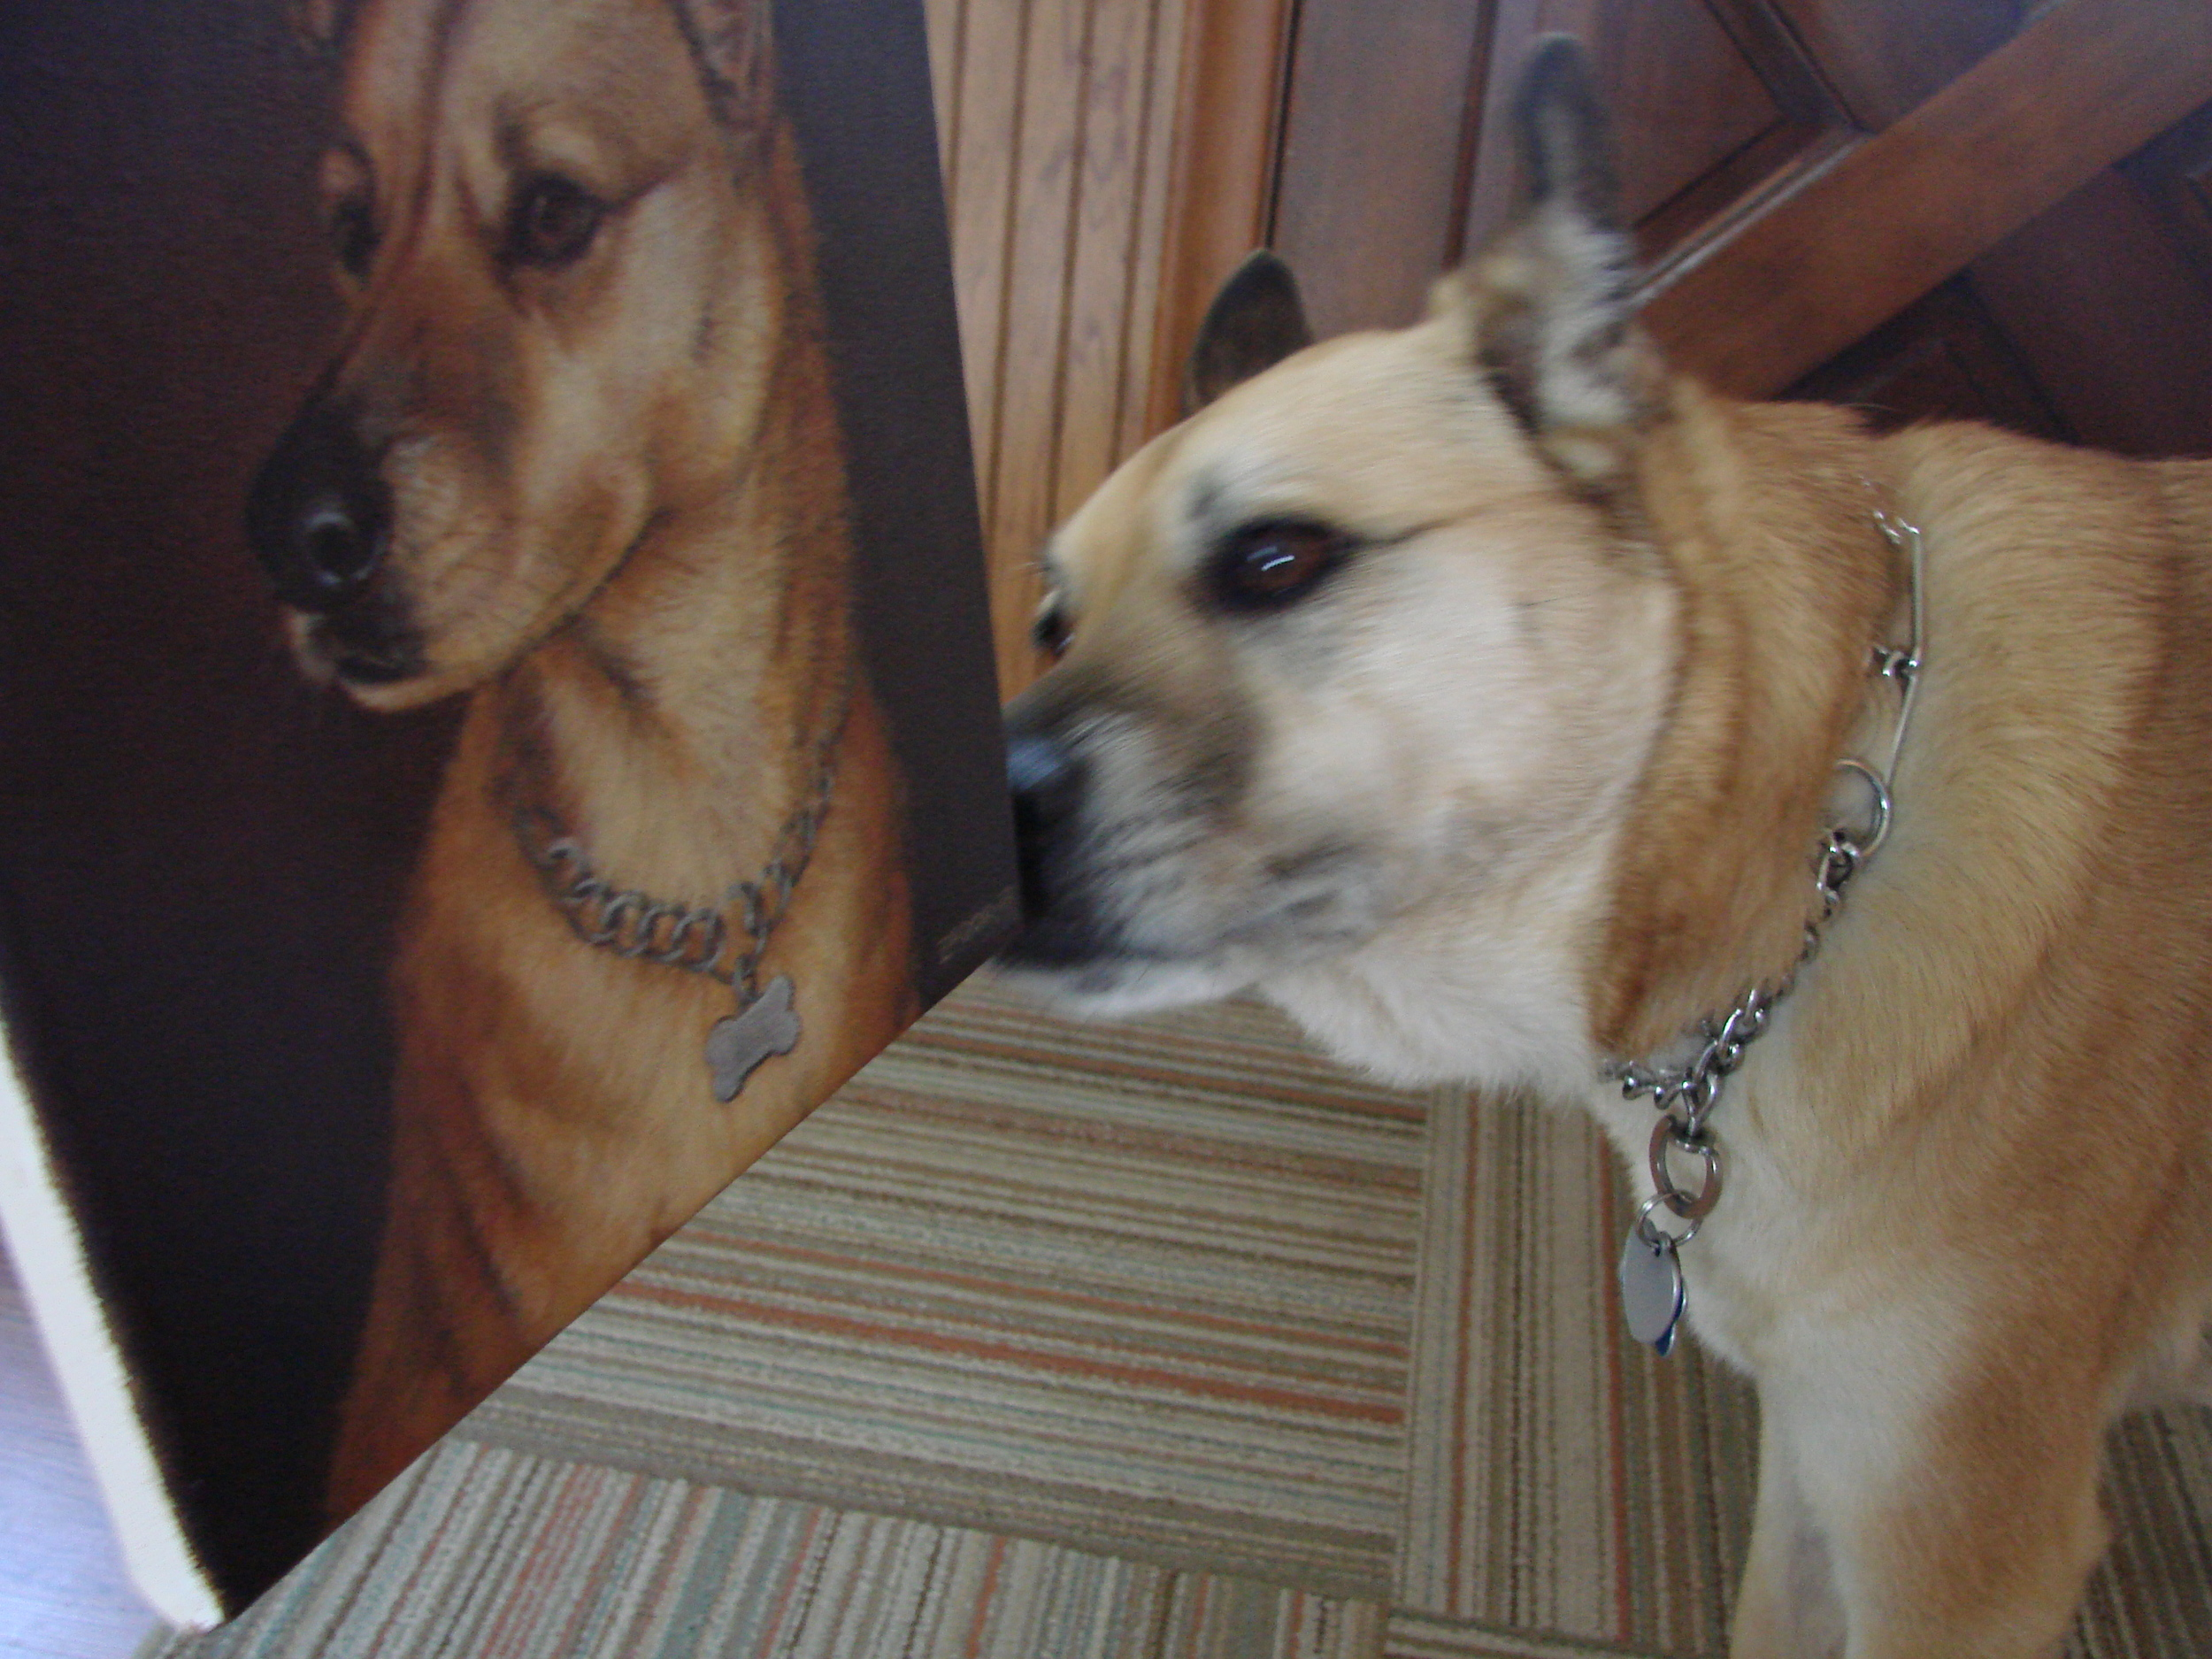 Luckie checking out her portrait